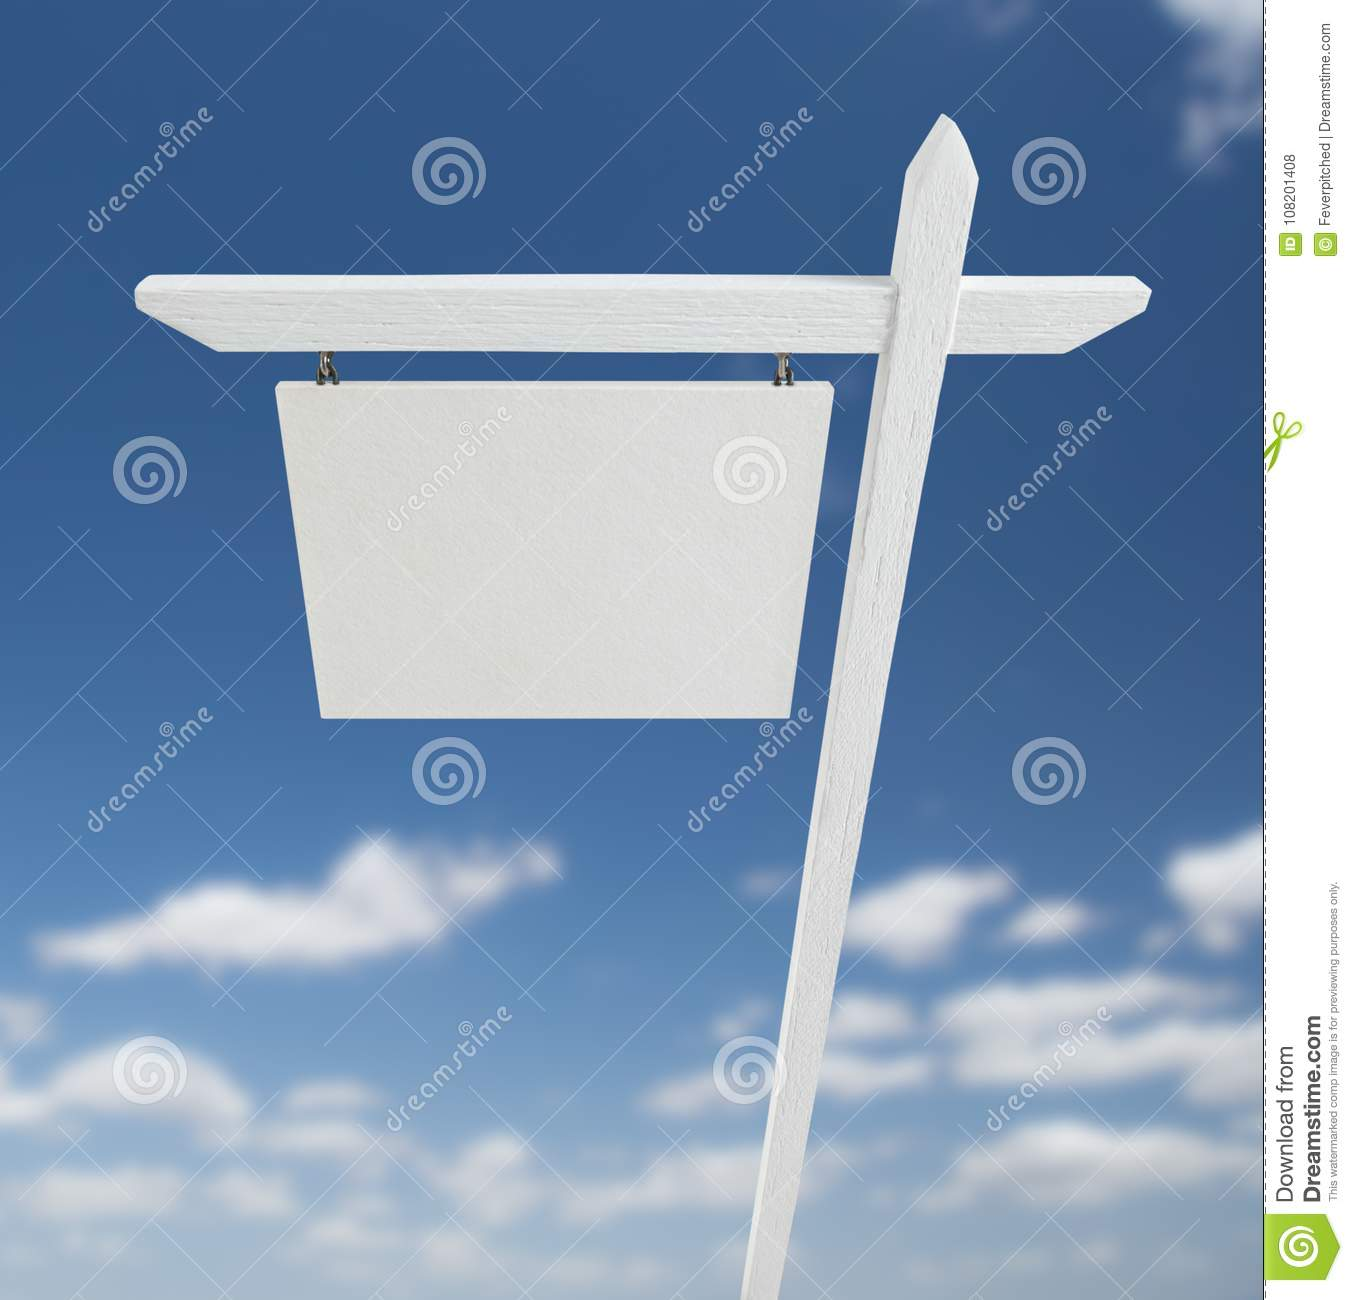 Blank Real Estate Sign Over A Blue Sky With Clouds. Stock